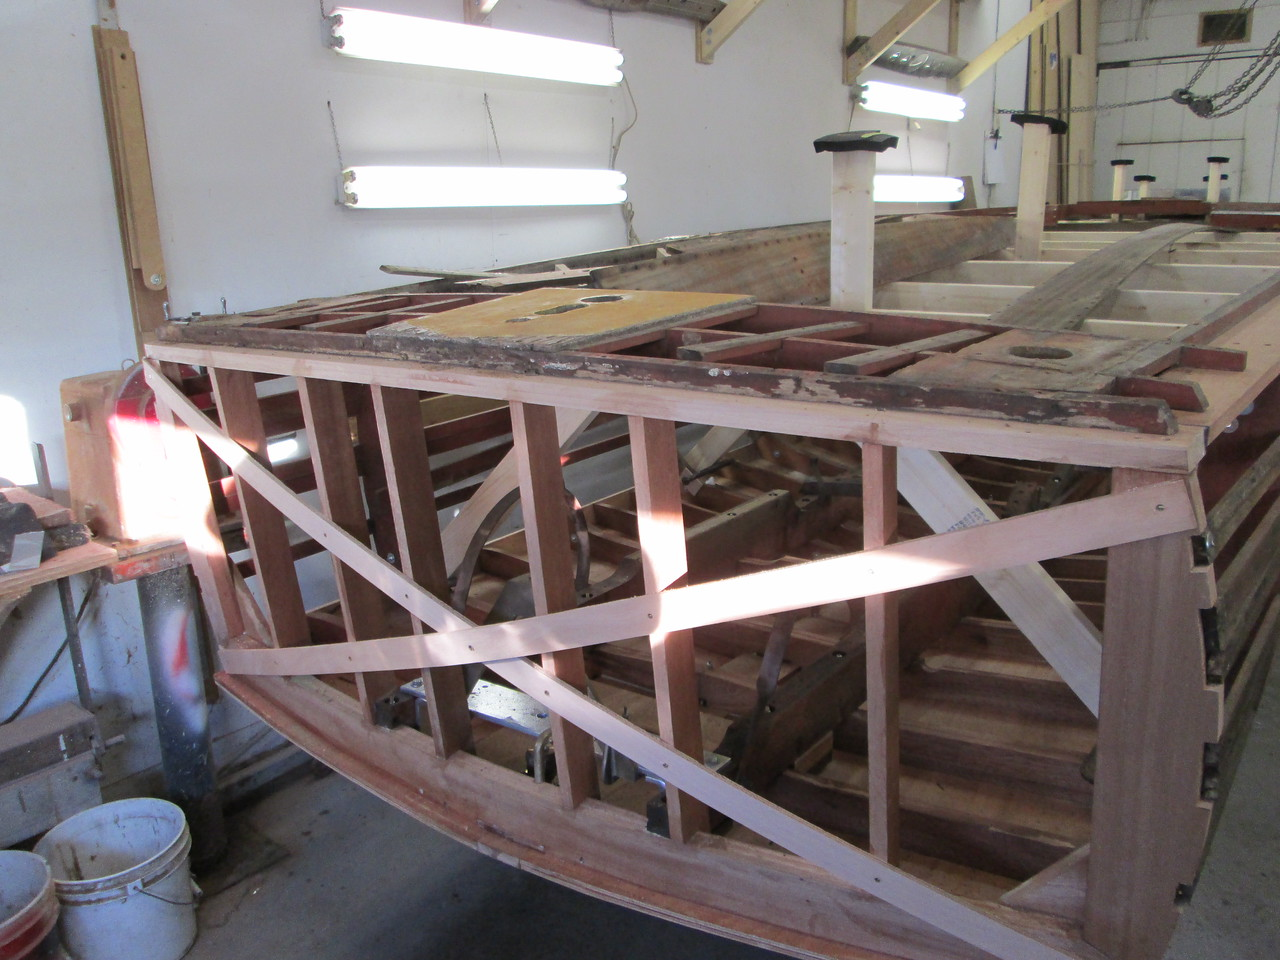 New transom shear plate installed. The hull is ready to be turned up side down.